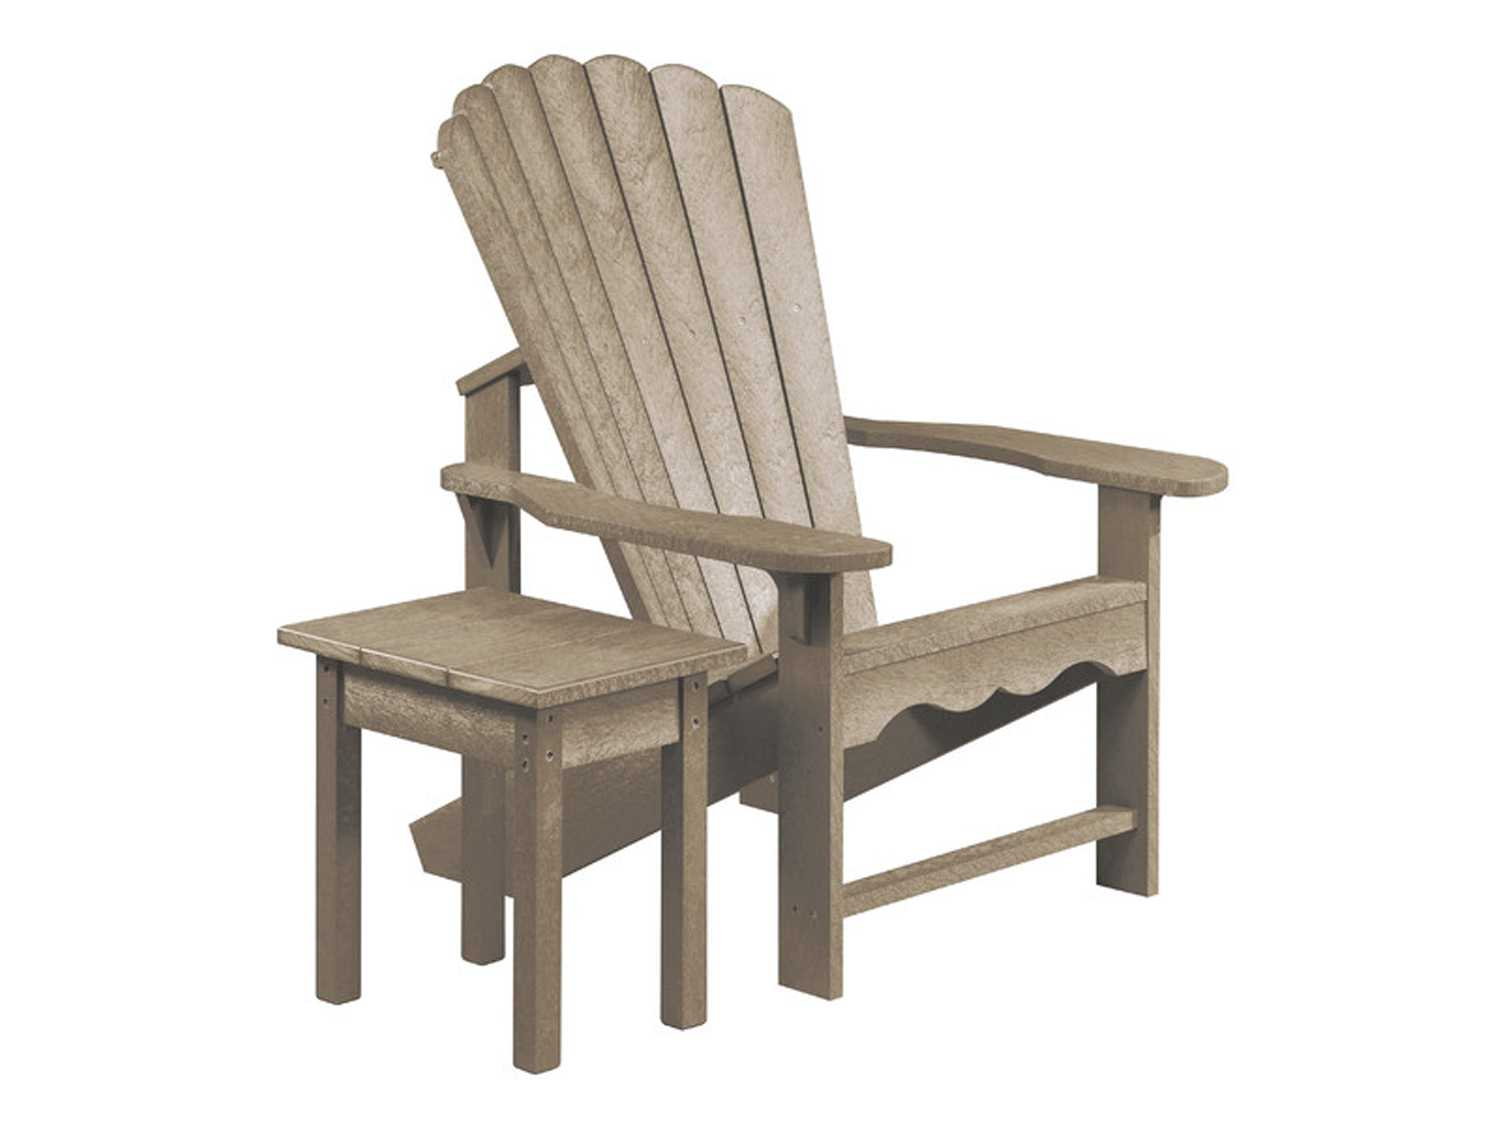 small plastic chair galway covers contact number c r generation recycled adirondack